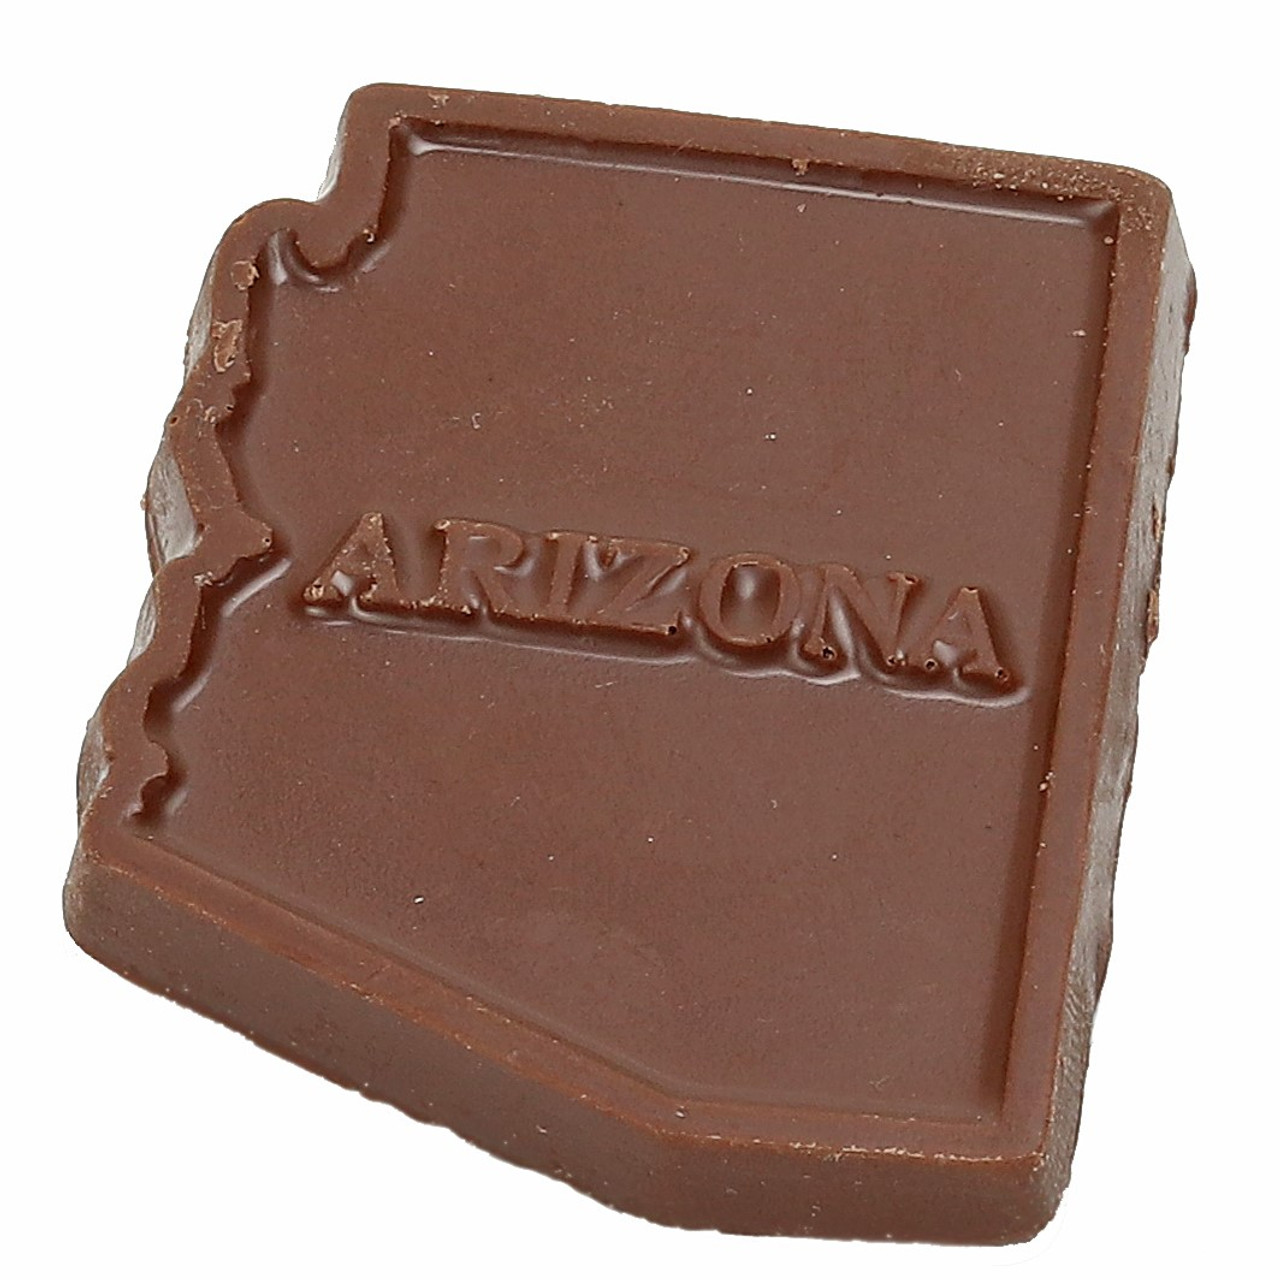 Chocolate State of Arizona